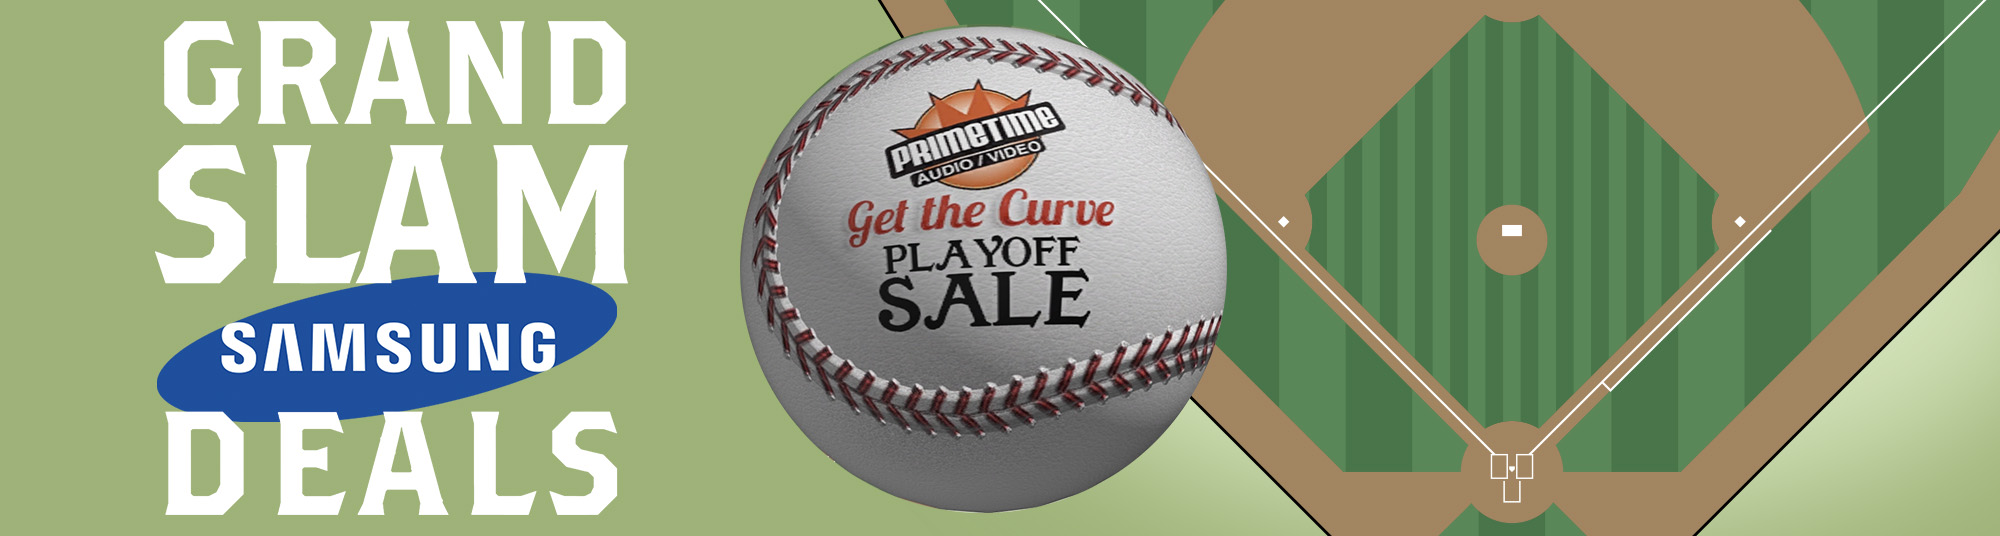 Samsung Get the Curve play-off Sale going on new at Primetime!